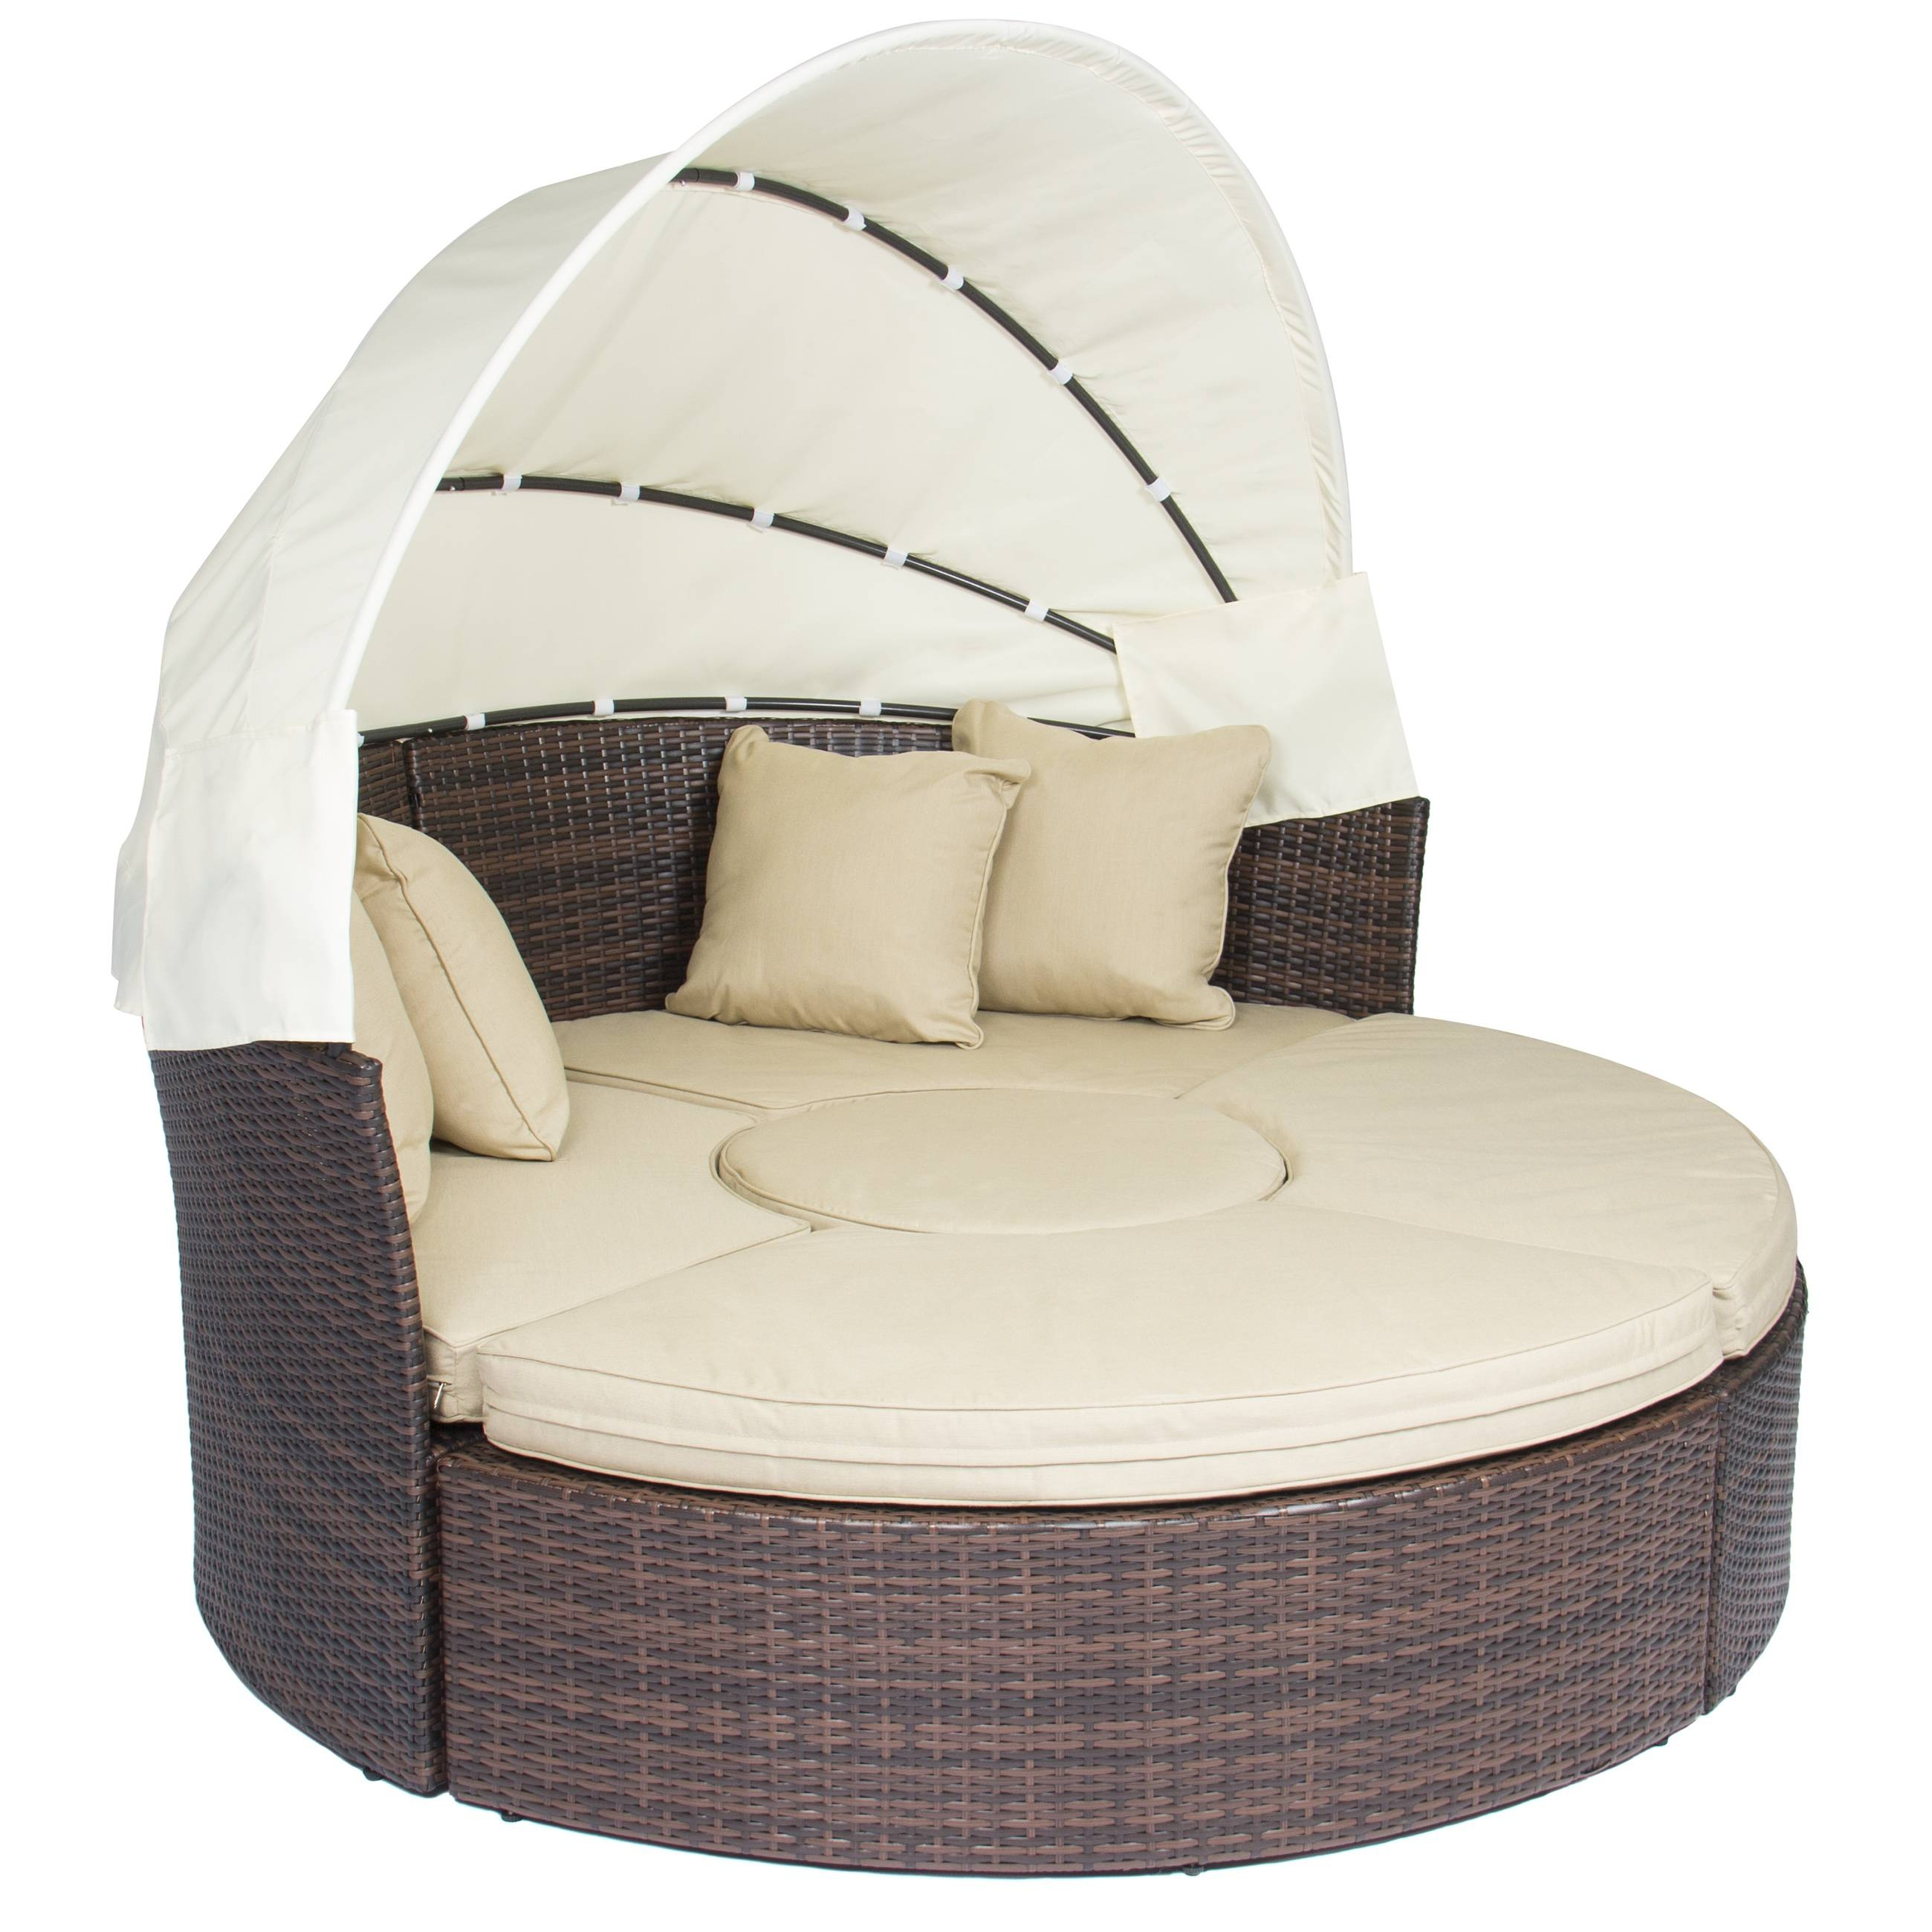 Outdoor Patio Sofa Furniture Round Retractable Canopy Daybed Brown Inside Big  Round Sofa Chairs (Image